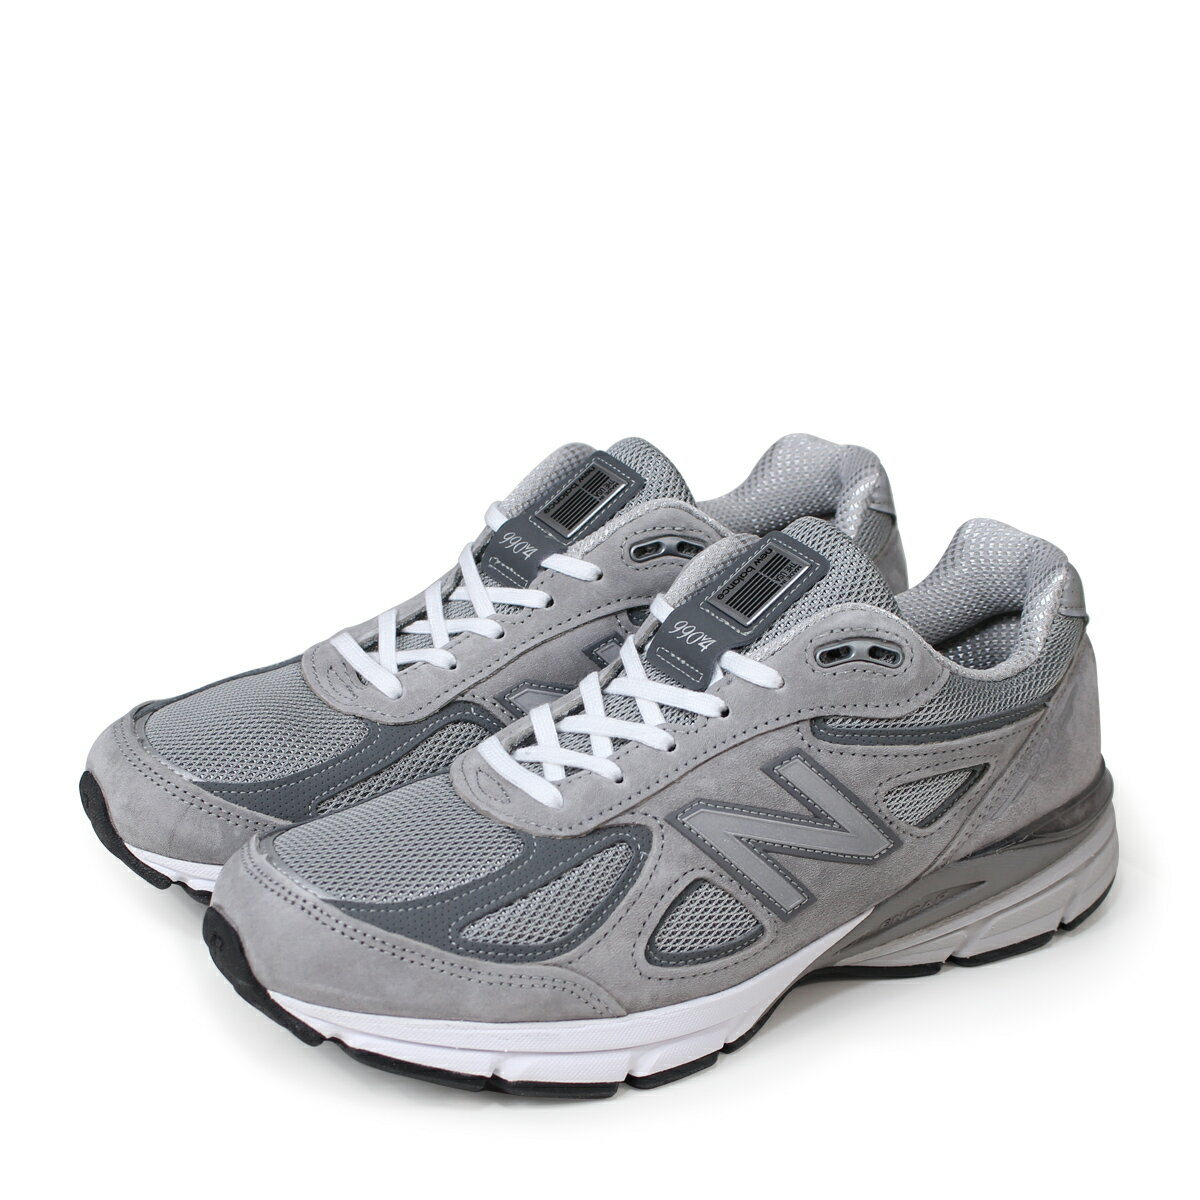 half off fe8d7 a054e new balance 990 New Balance sneakers men D Wise gray M990GL4 [193]